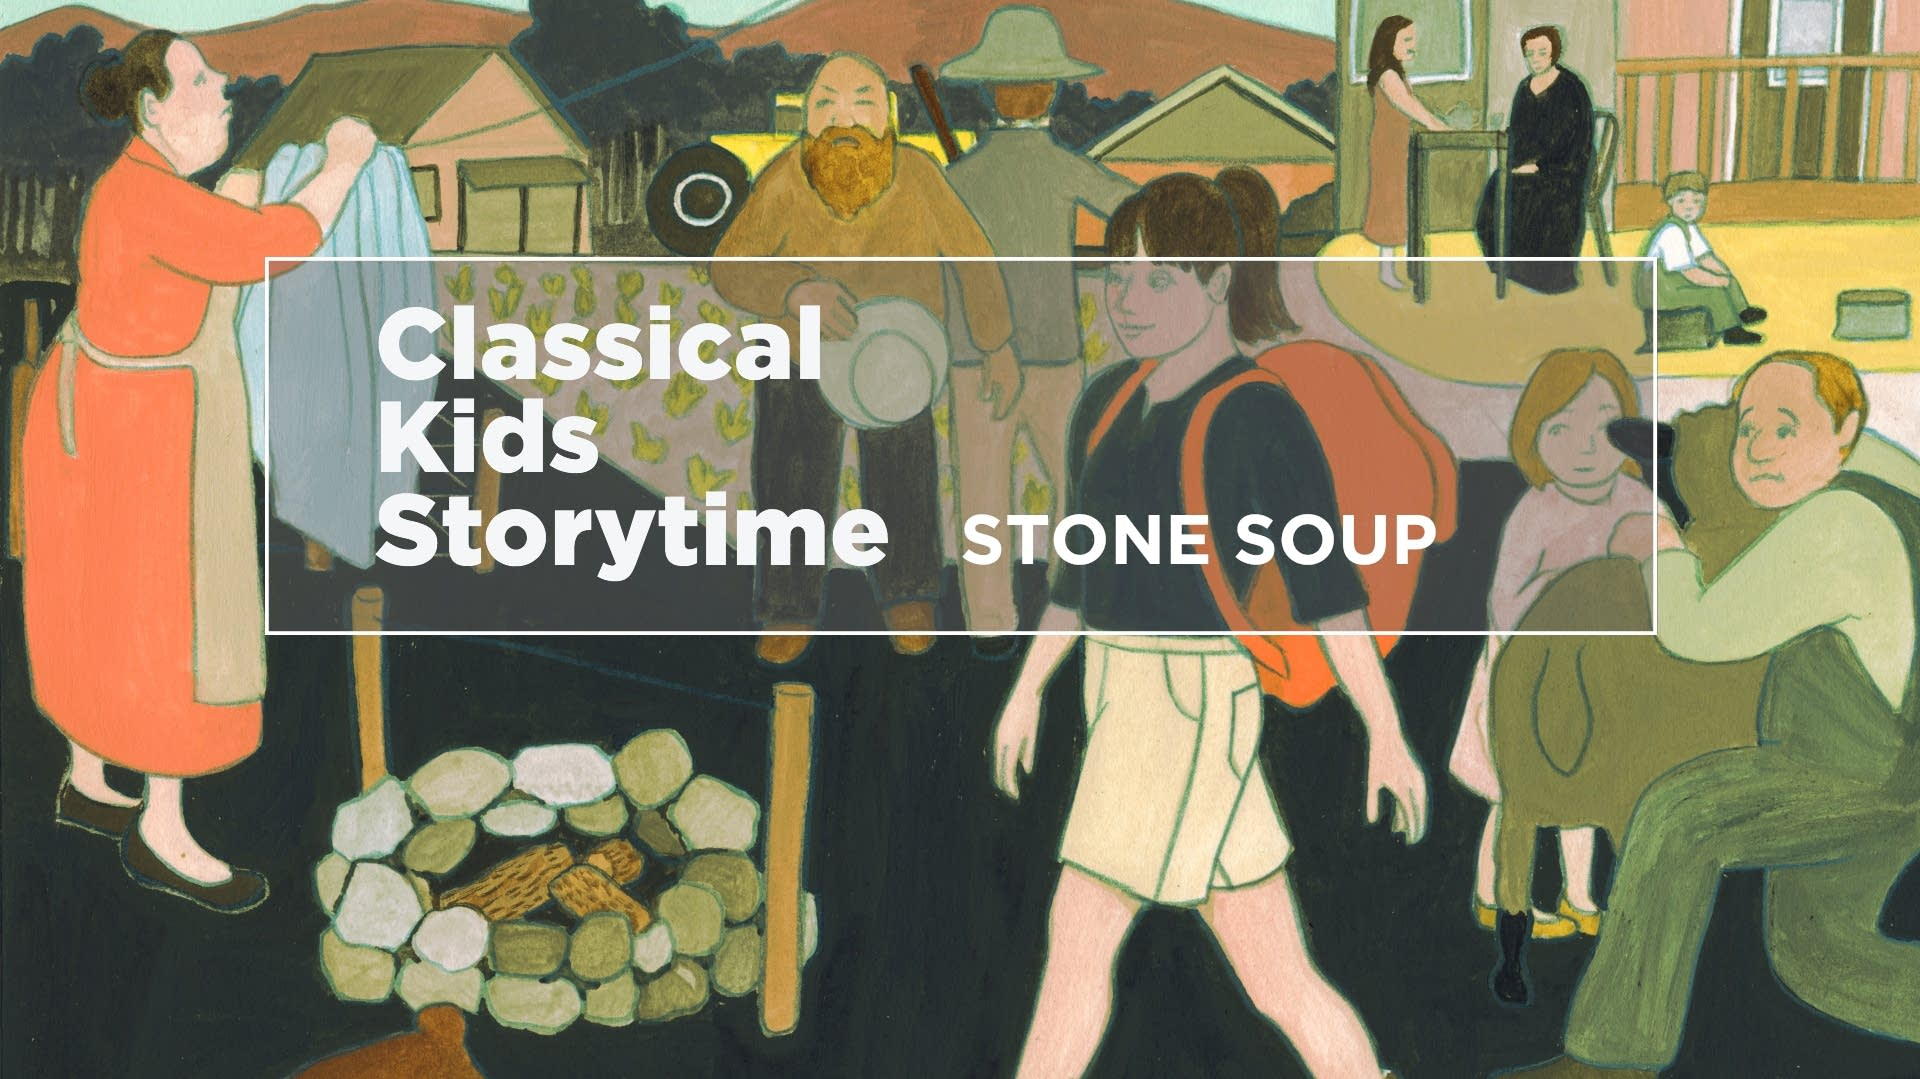 Classical Kids Storytime: Stone Soup